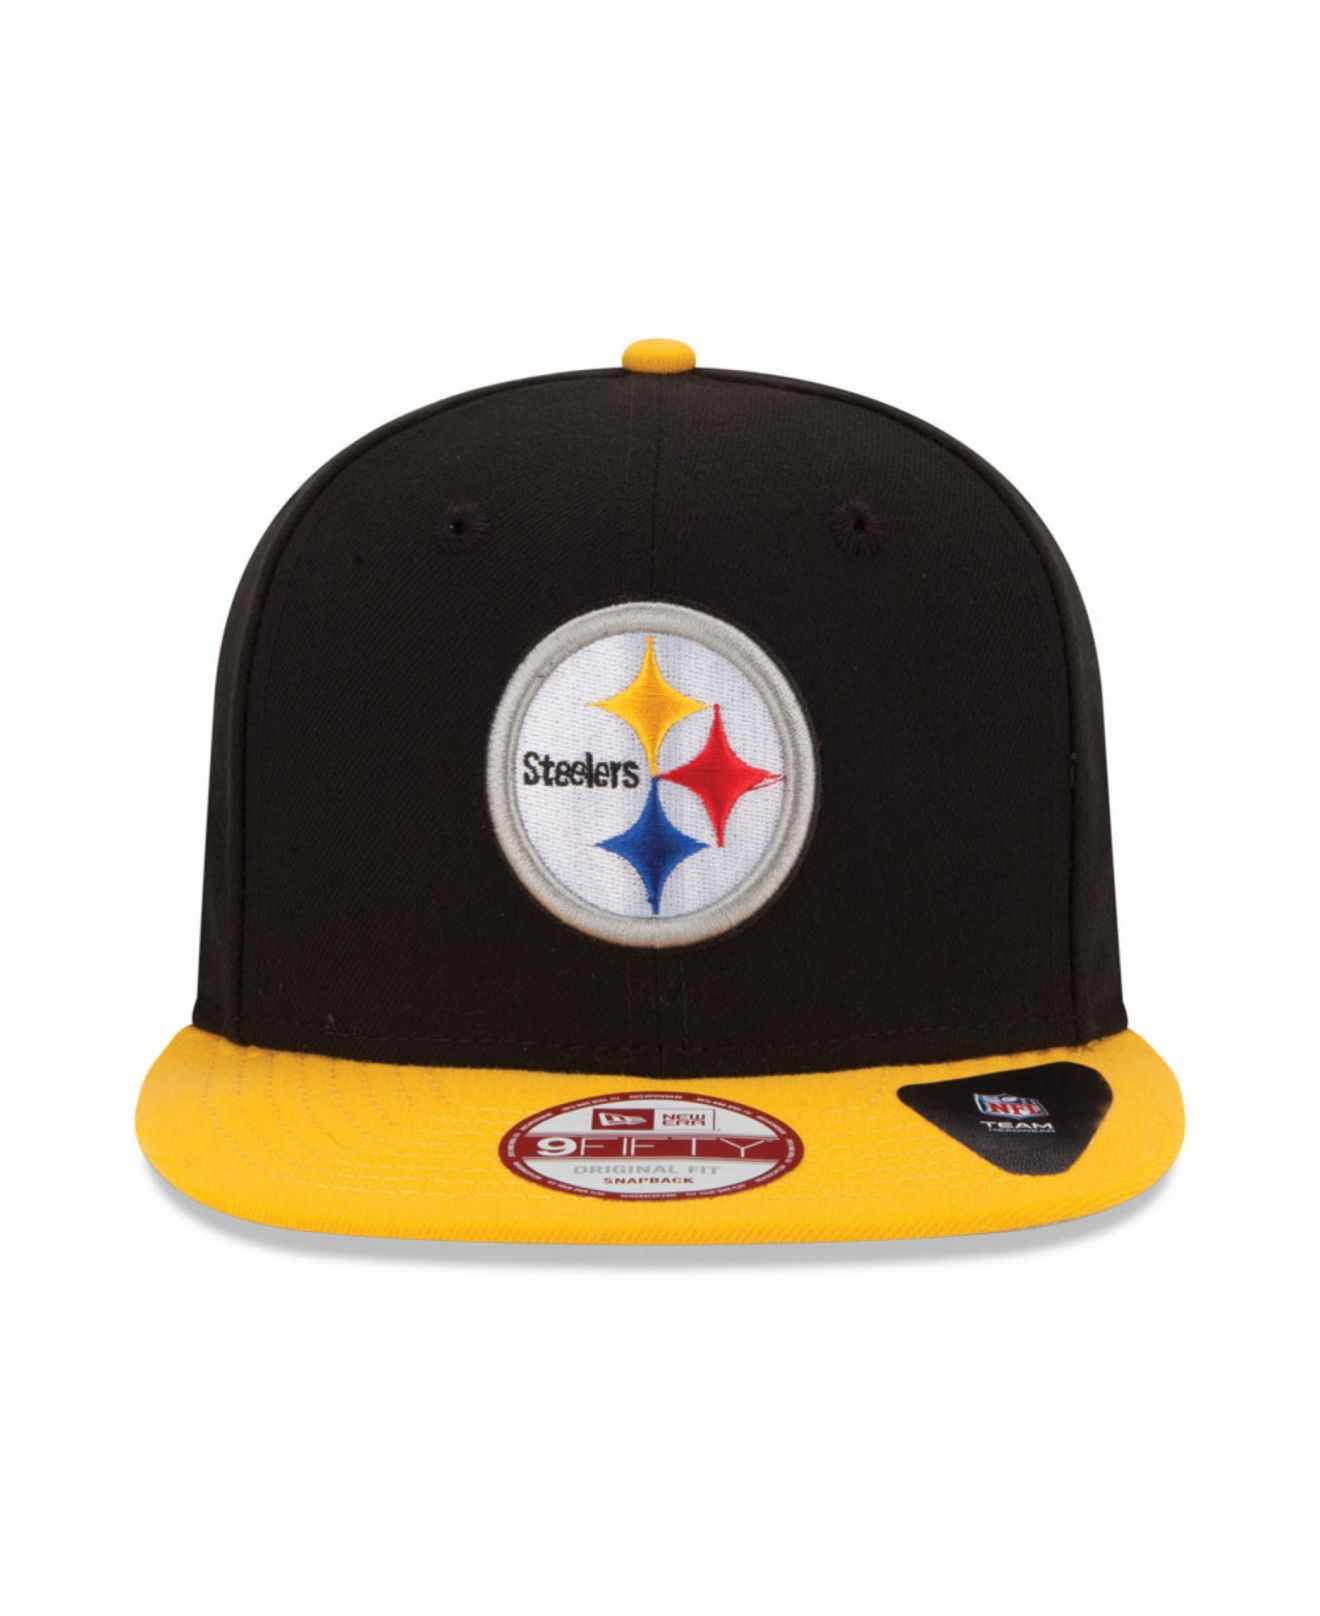 a41e2758227 Lyst - KTZ Pittsburgh Steelers 9fifty Snapback Cap in Black for Men